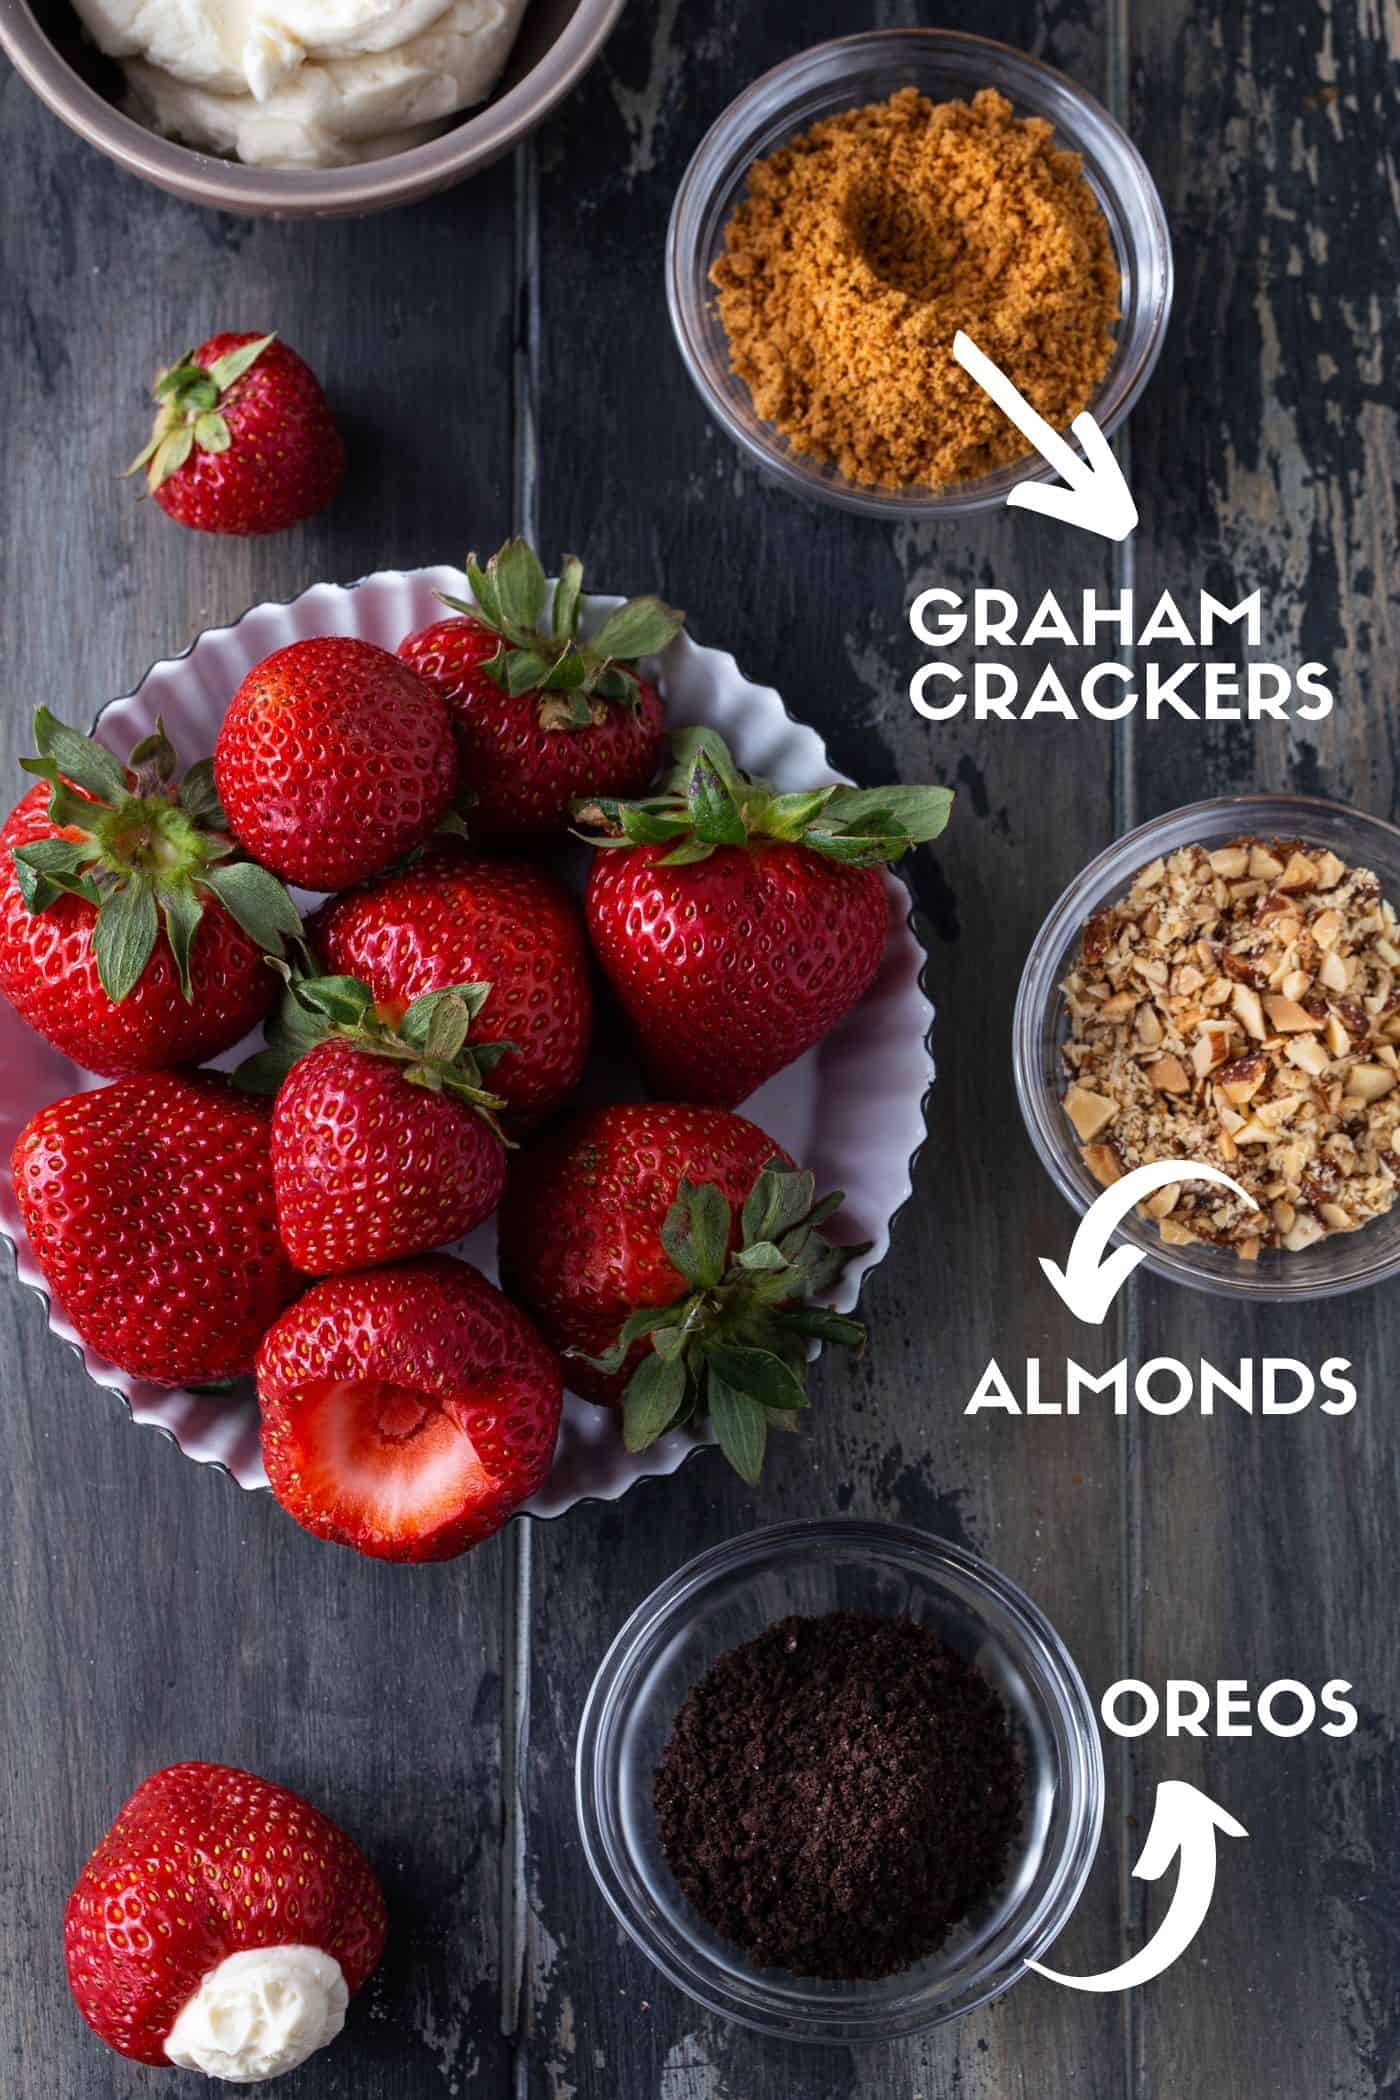 Small bowls of crushed Oreos, graham crackers and almonds next to strawberries and cheesecake filling.